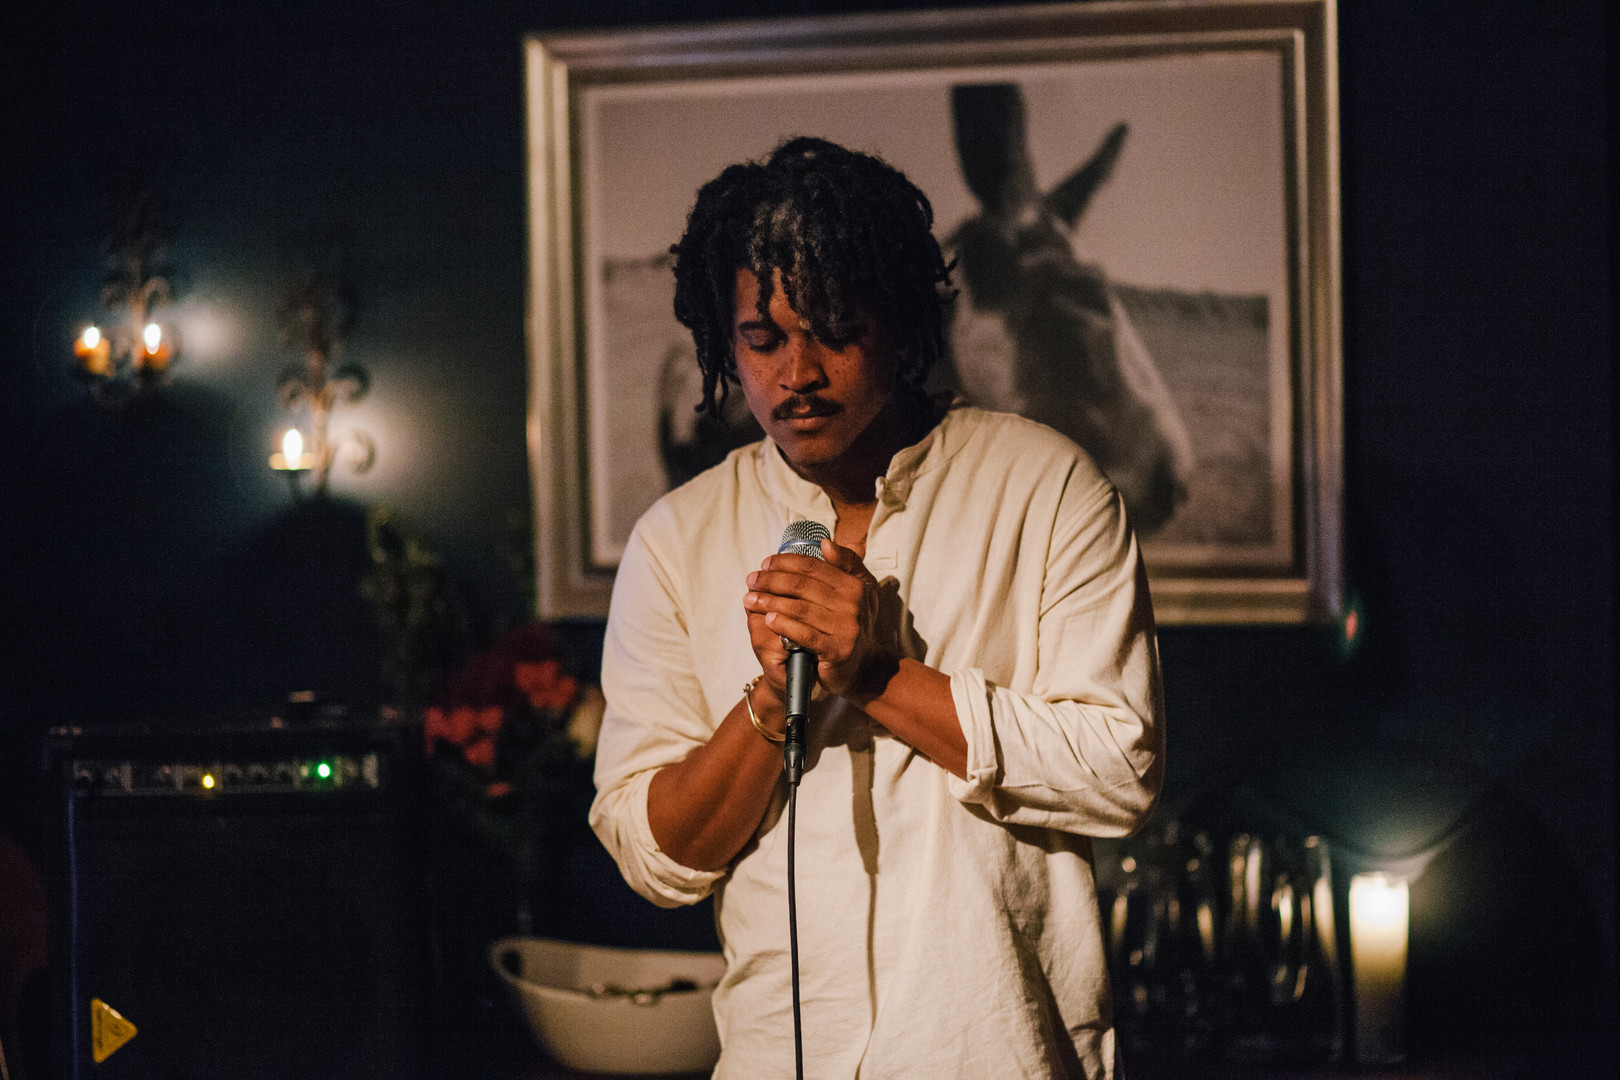 James Robinson at The Blue Room Supper Club